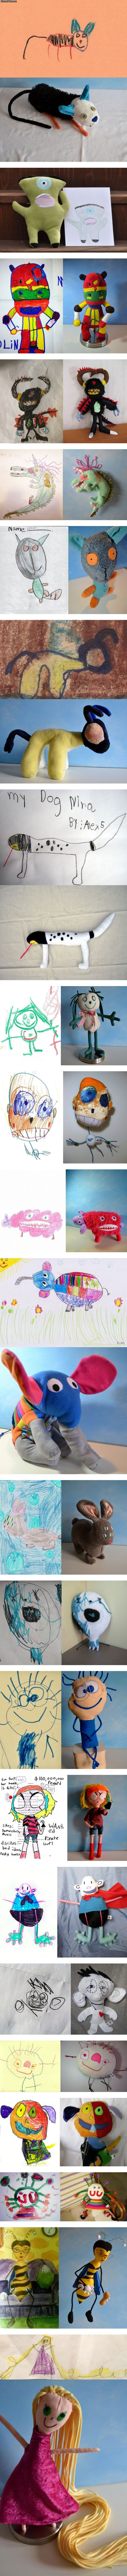 Childrens drawings were made into toys